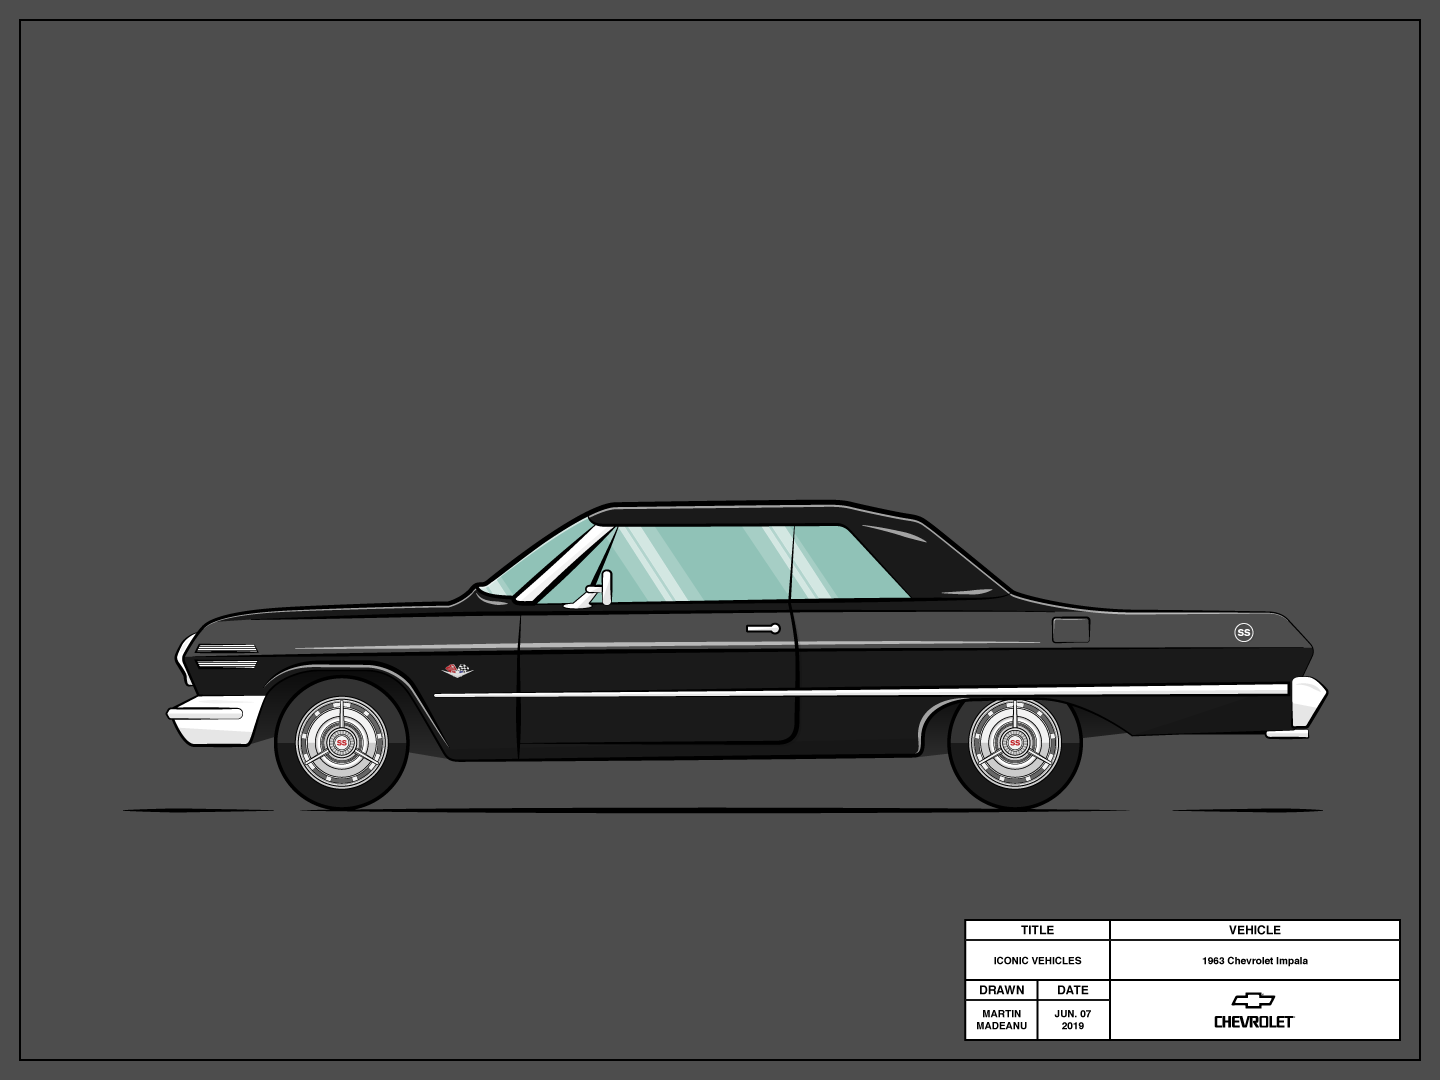 02Chevy_Impala-02.png